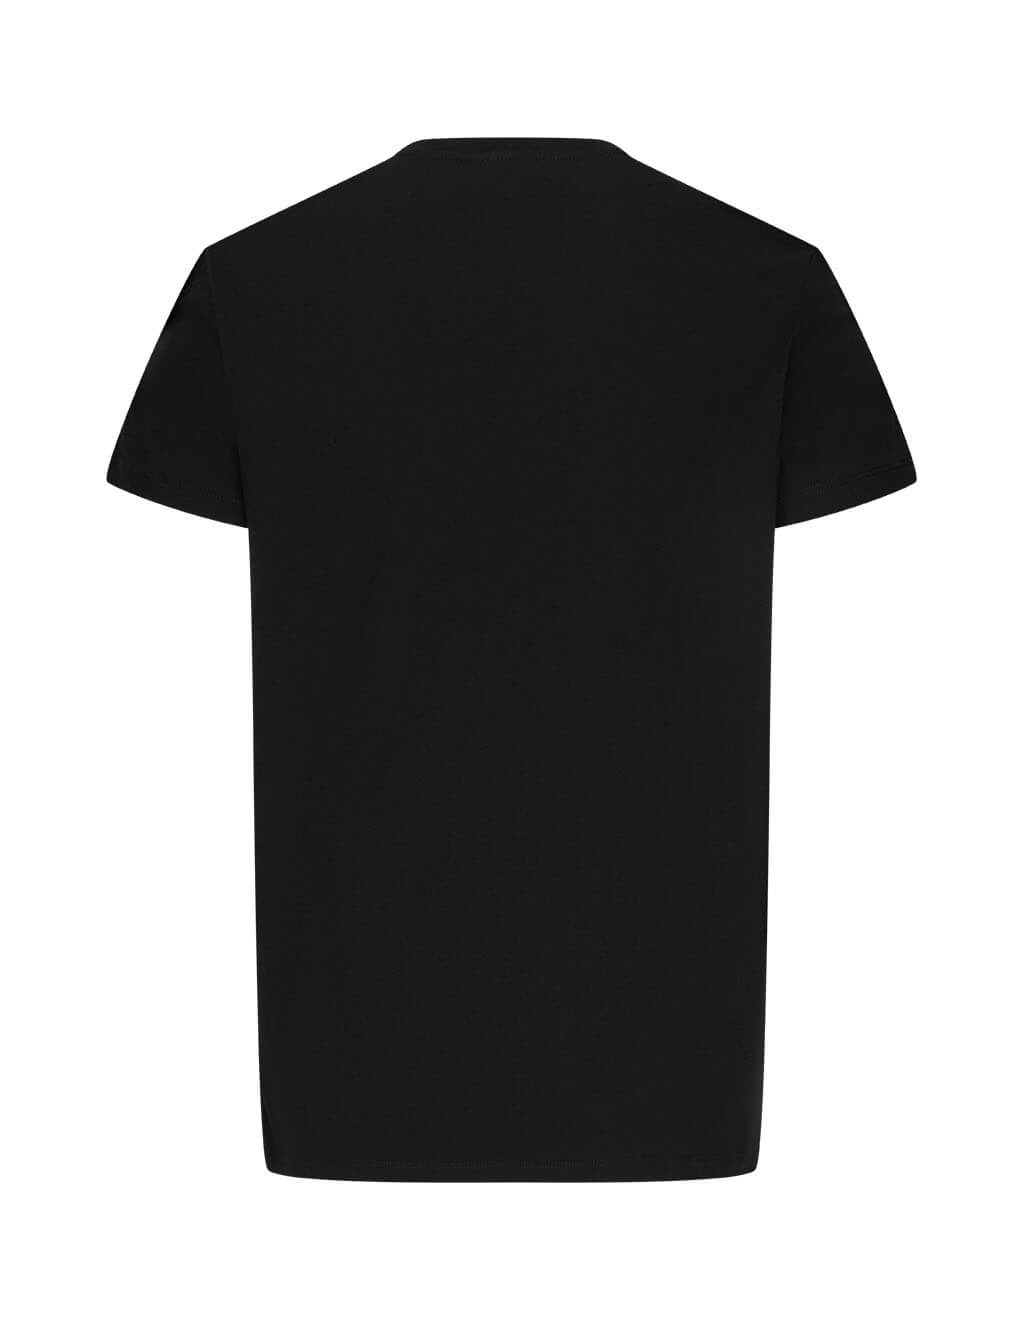 Balmain Men's Giulio Fashion Black Multicolour Logo Print T-Shirt UH11601I311AAA